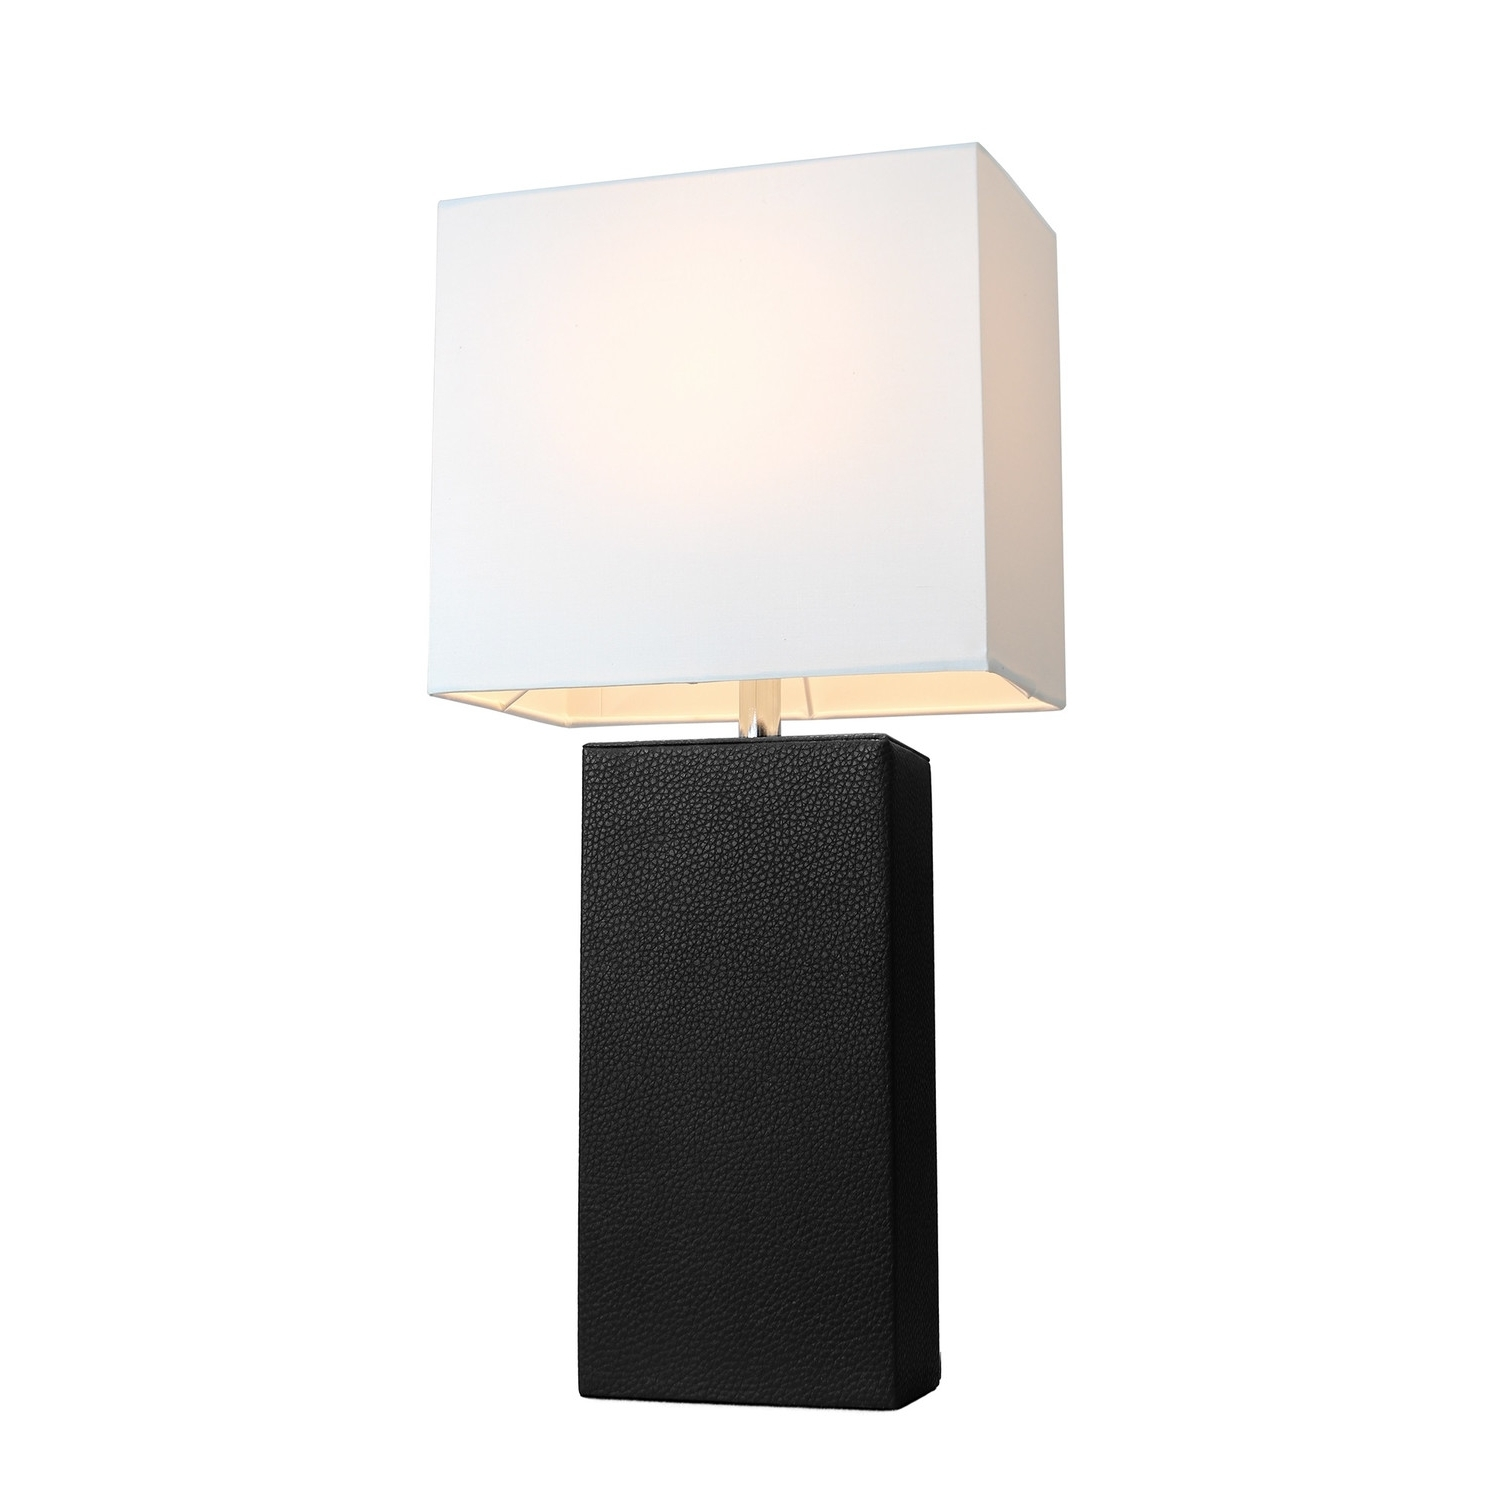 Lamp : Elegant Mid Century Floor Lamp Luxury Lamps All About Home With Regard To Most Up To Date Wood Table Lamps For Living Room (View 18 of 20)